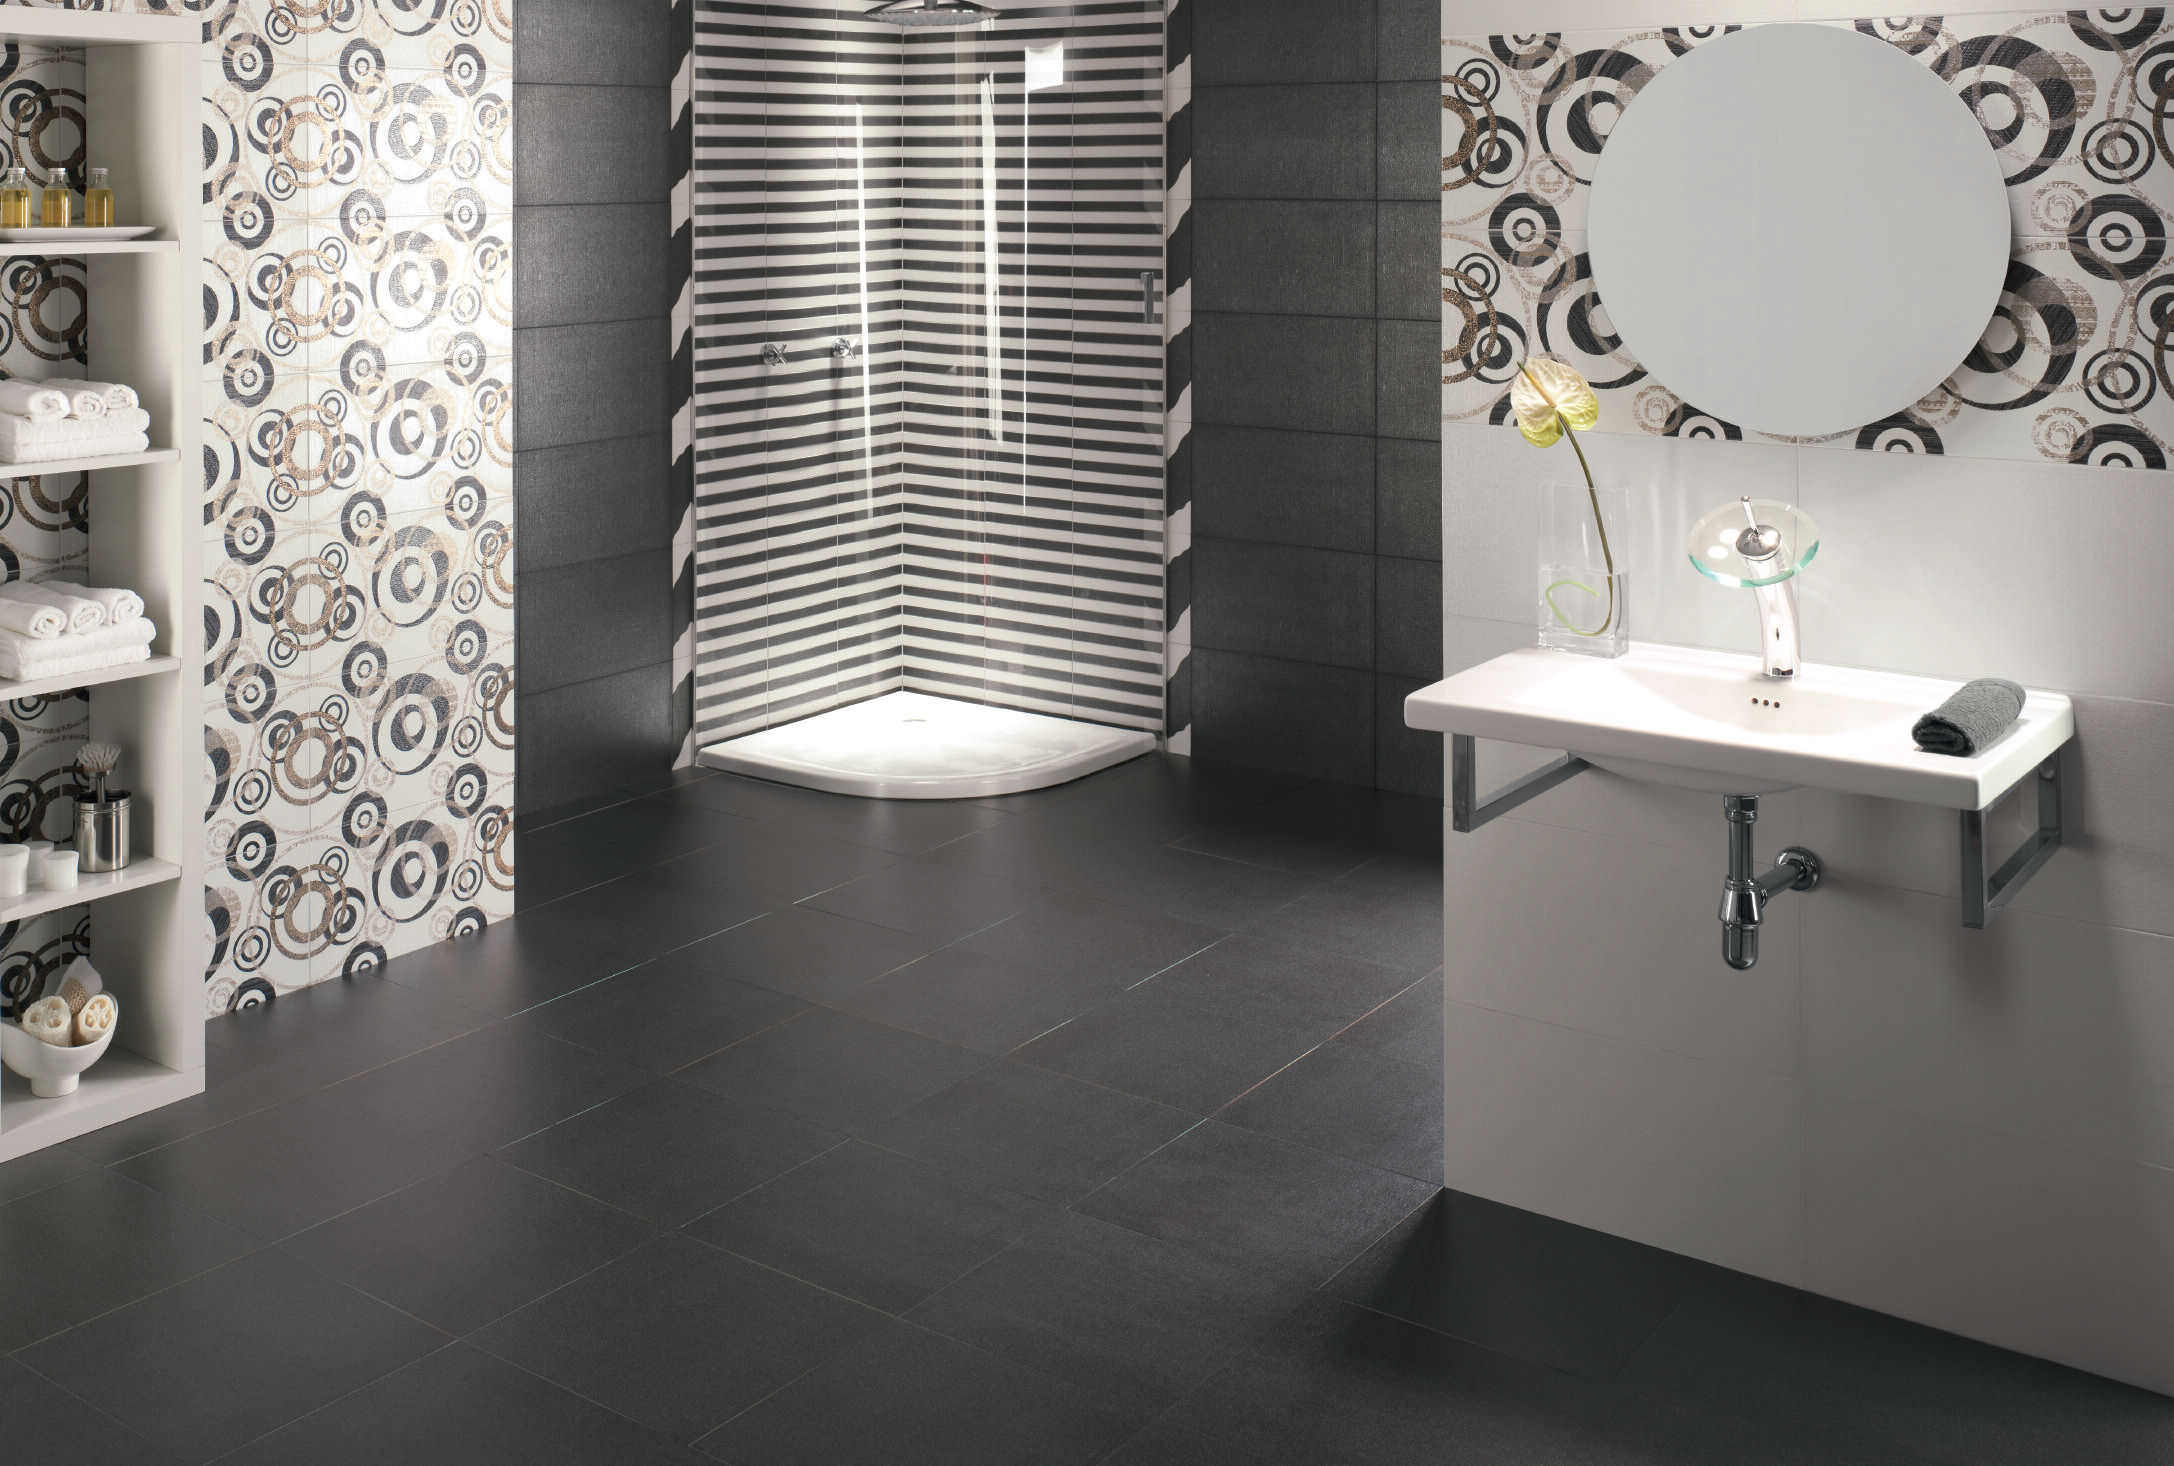 Lino Noir Indoor Tile Bathroom Wall Porcelain Stoneware Traditional